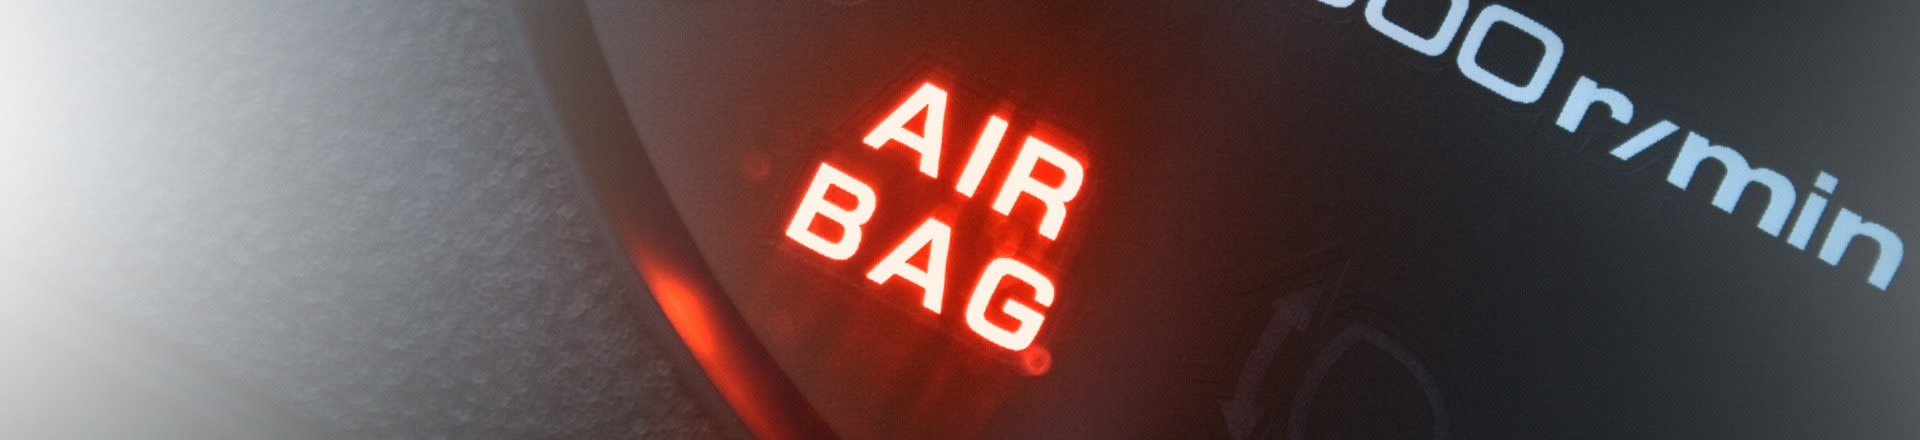 Shine Lawyers | Red lighting airbag control symbol in car